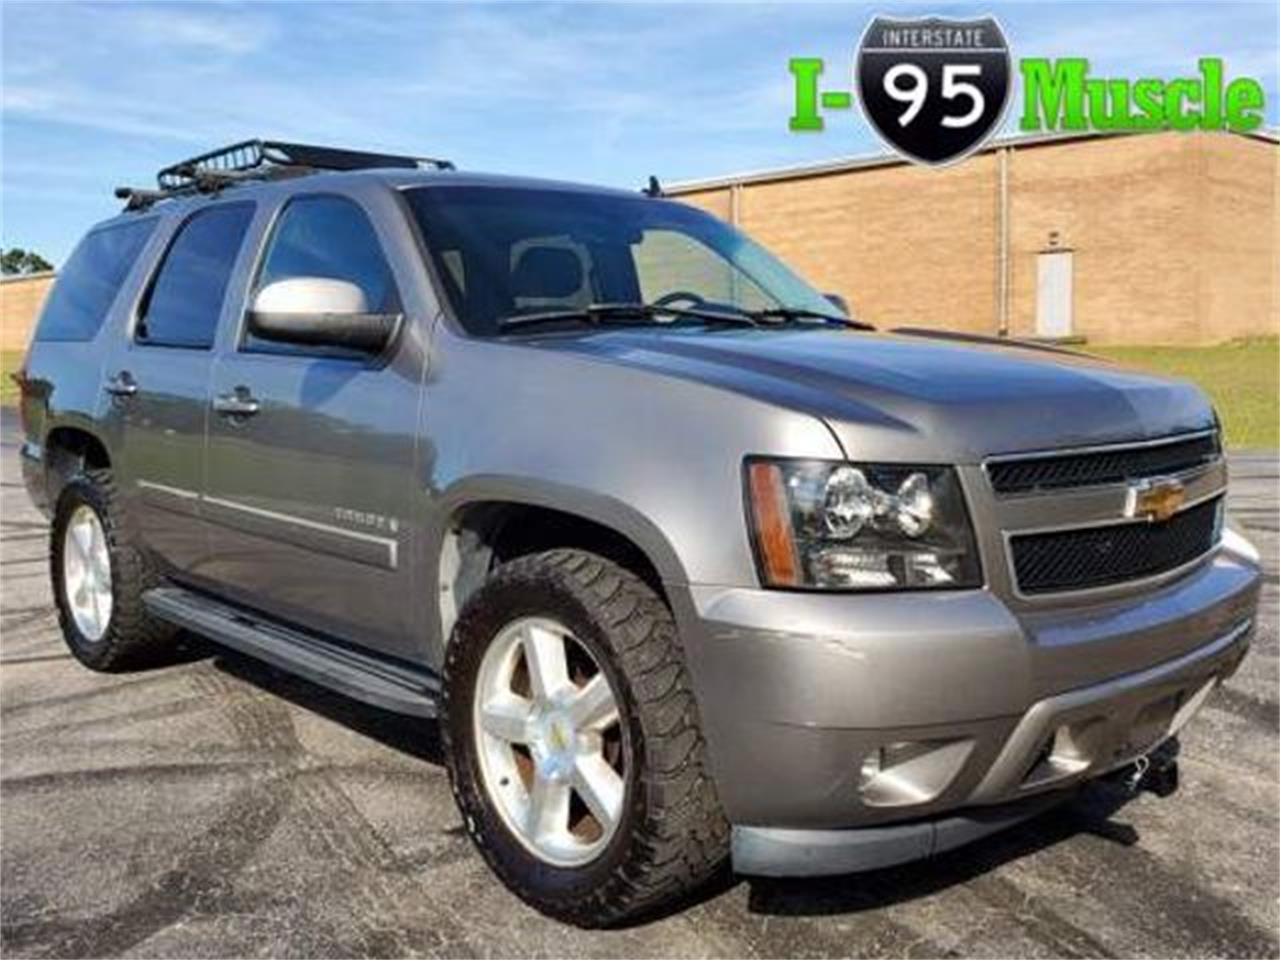 2007 Chevy Tahoe For Sale >> 2007 Chevrolet Tahoe For Sale Classiccars Com Cc 1209998